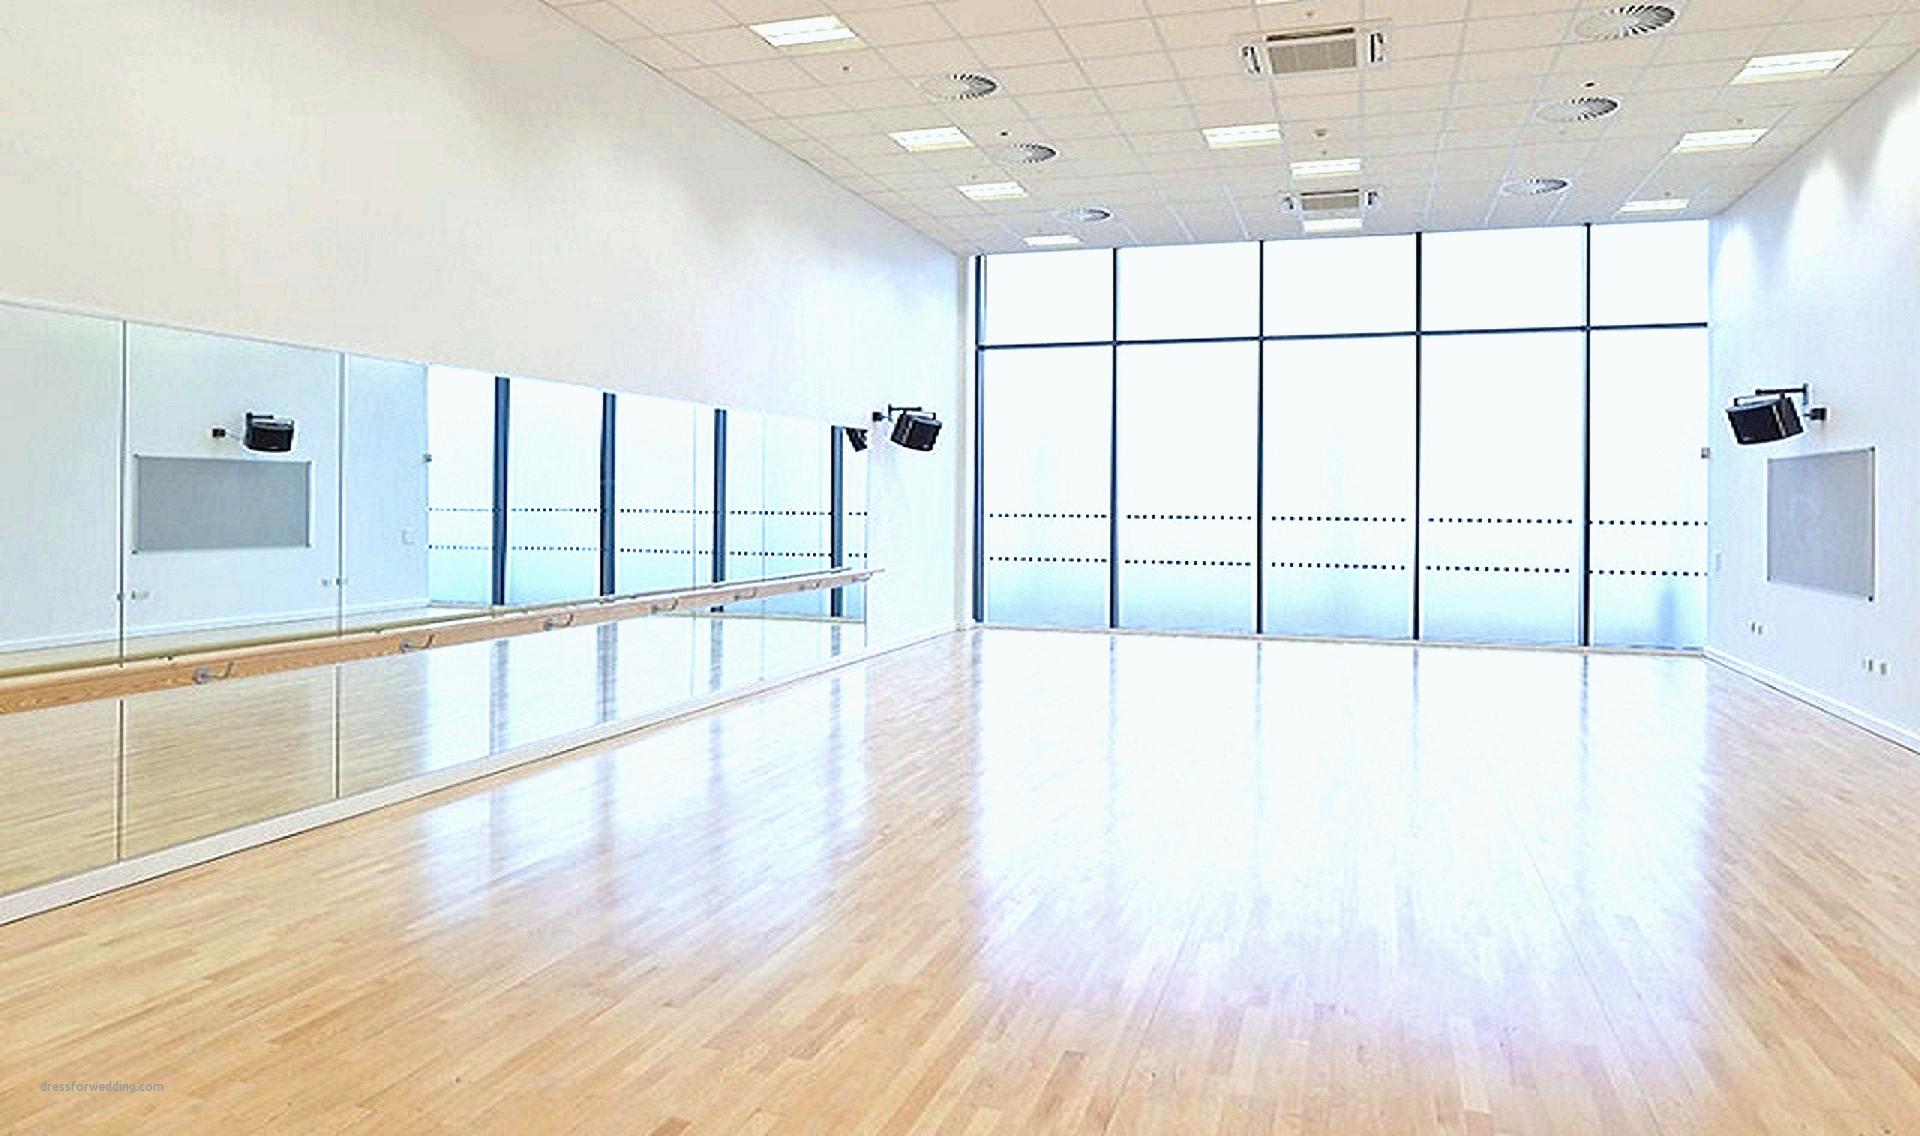 dance-studio-wall-mirrors-large-wall-mirror-gym-mirror-dance-studio-mirror-dance-studio-wall-mirrors-sale